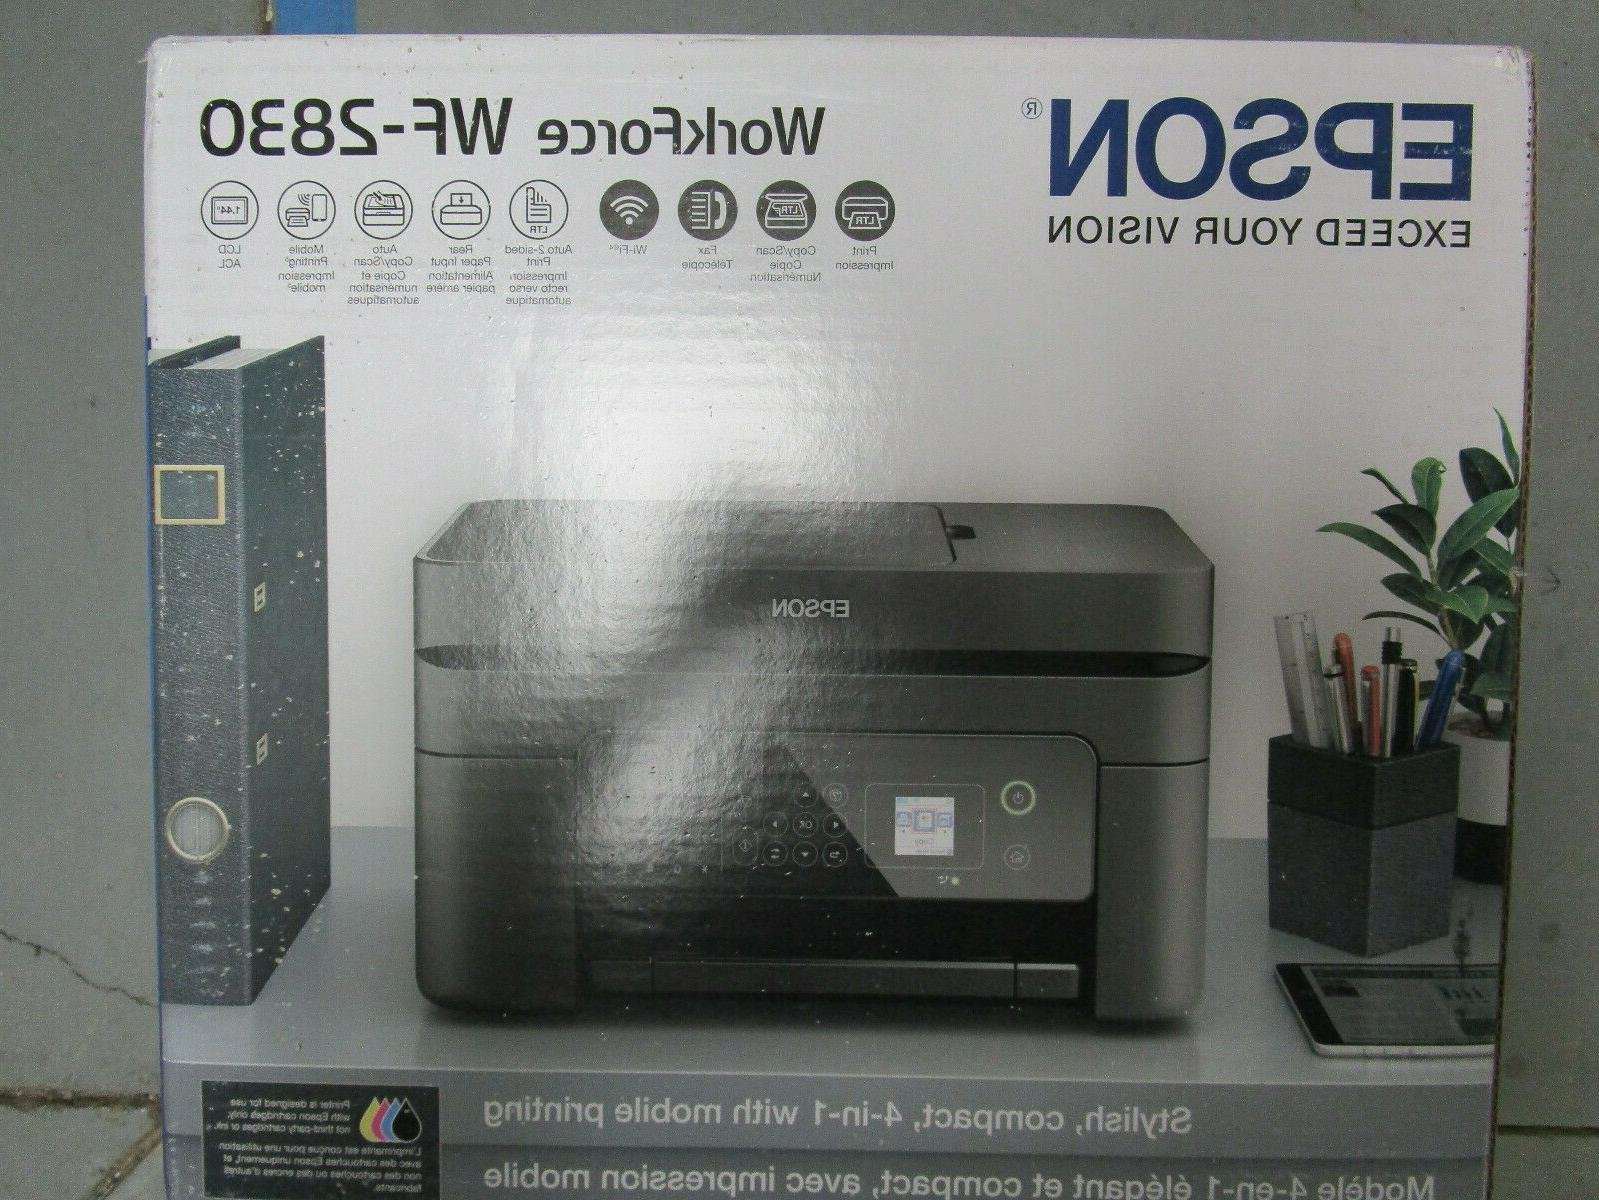 workforce compact 4in1 mobile printer wf 2830